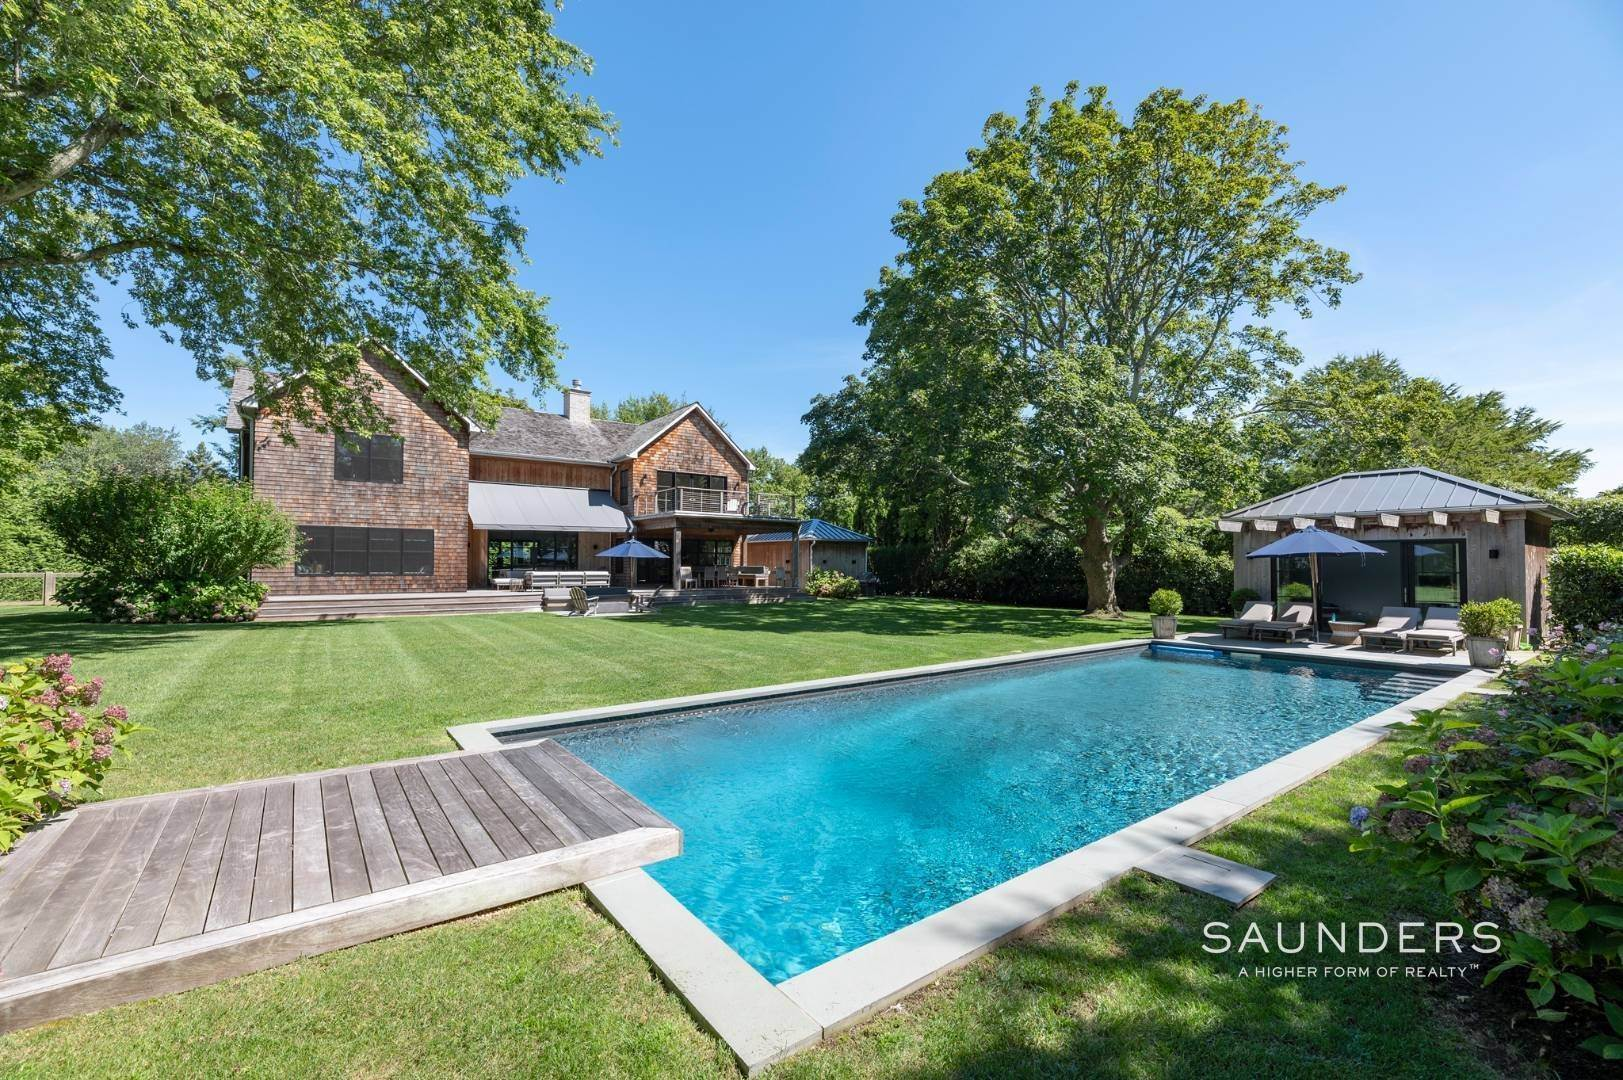 2. Single Family Homes for Sale at European Chic In Bridgehampton South 139 Hildreth Avenue - 20 Audubon Avenue, Bridgehampton, Southampton Town, NY 11937